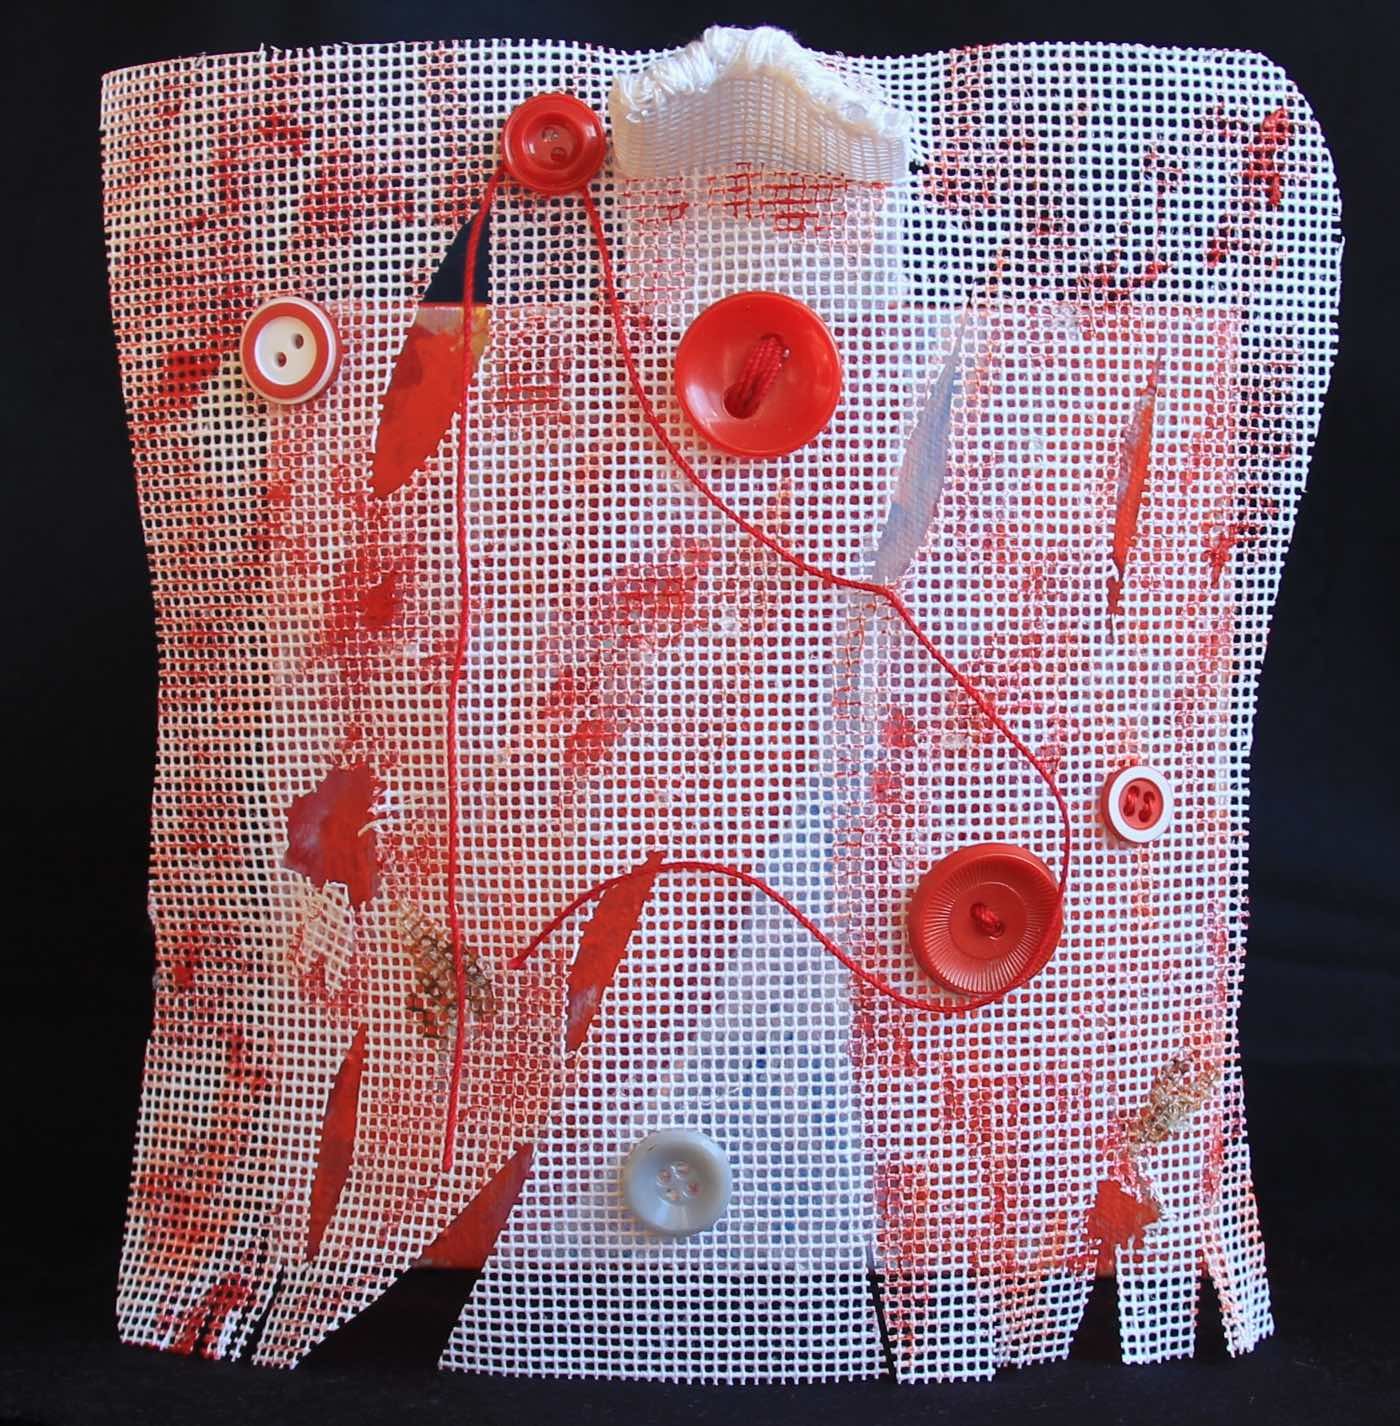 Mixed media red and white painting on needlepoint canvas and stretched canvas with red buttons and thread